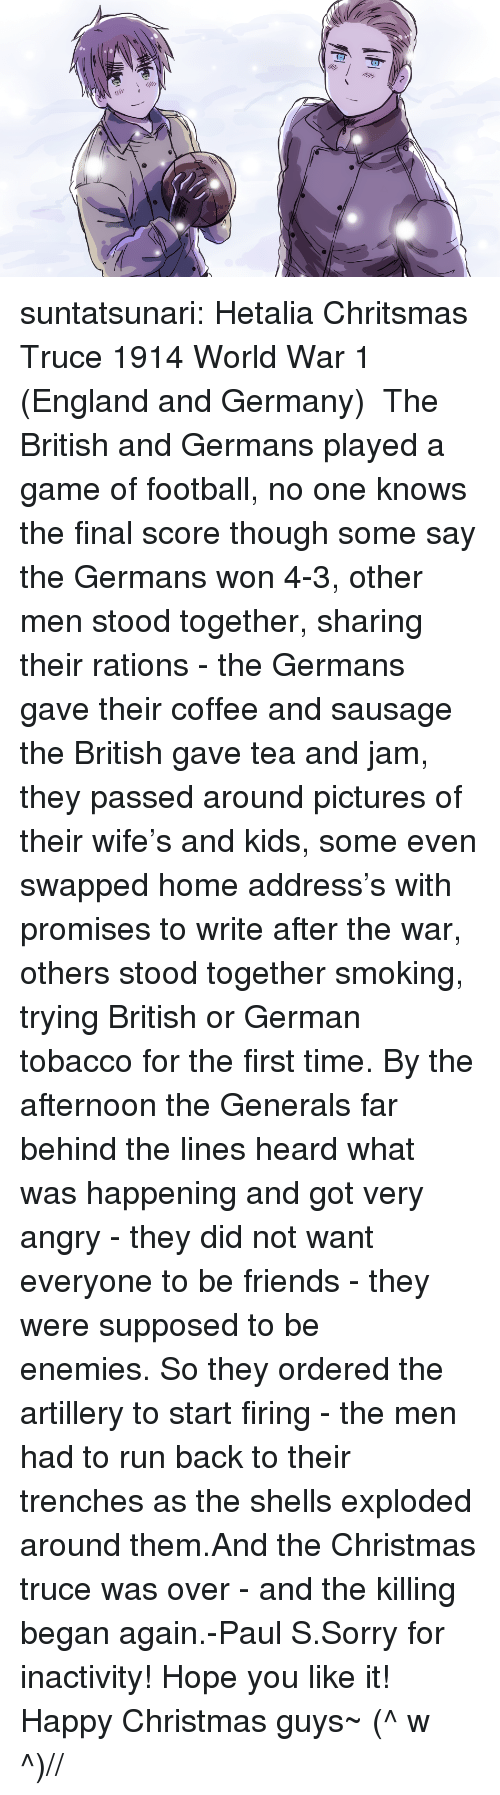 Other Men: suntatsunari:  Hetalia Chritsmas Truce 1914 World War 1 (England and Germany)   The British and Germans played a game of football, no one knows the final score though some say the Germans won 4-3, other men stood together, sharing their rations - the Germans gave their coffee and sausage the British gave tea and jam, they passed around pictures of their wife's and kids, some even swapped home address's with promises to write after the war, others stood together smoking, trying British or German tobacco for the first time. By the afternoon the Generals far behind the lines heard what was happening and got very angry - they did not want everyone to be friends - they were supposed to be enemies. So they ordered the artillery to start firing - the men had to run back to their trenches as the shells exploded around them.And the Christmas truce was over - and the killing began again.-Paul S.Sorry for inactivity! Hope you like it! Happy Christmas guys~ (^ w ^)//